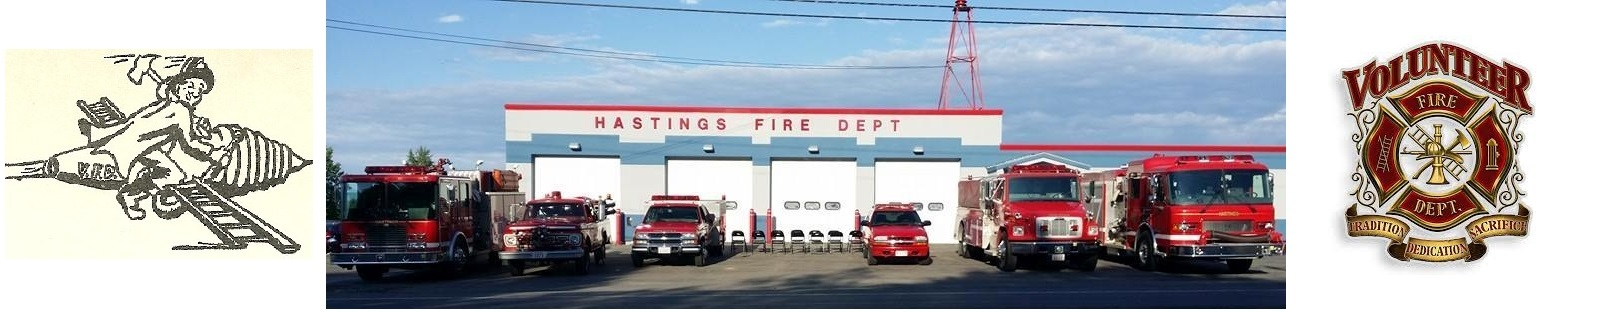 Hastings Fire Department Inc.